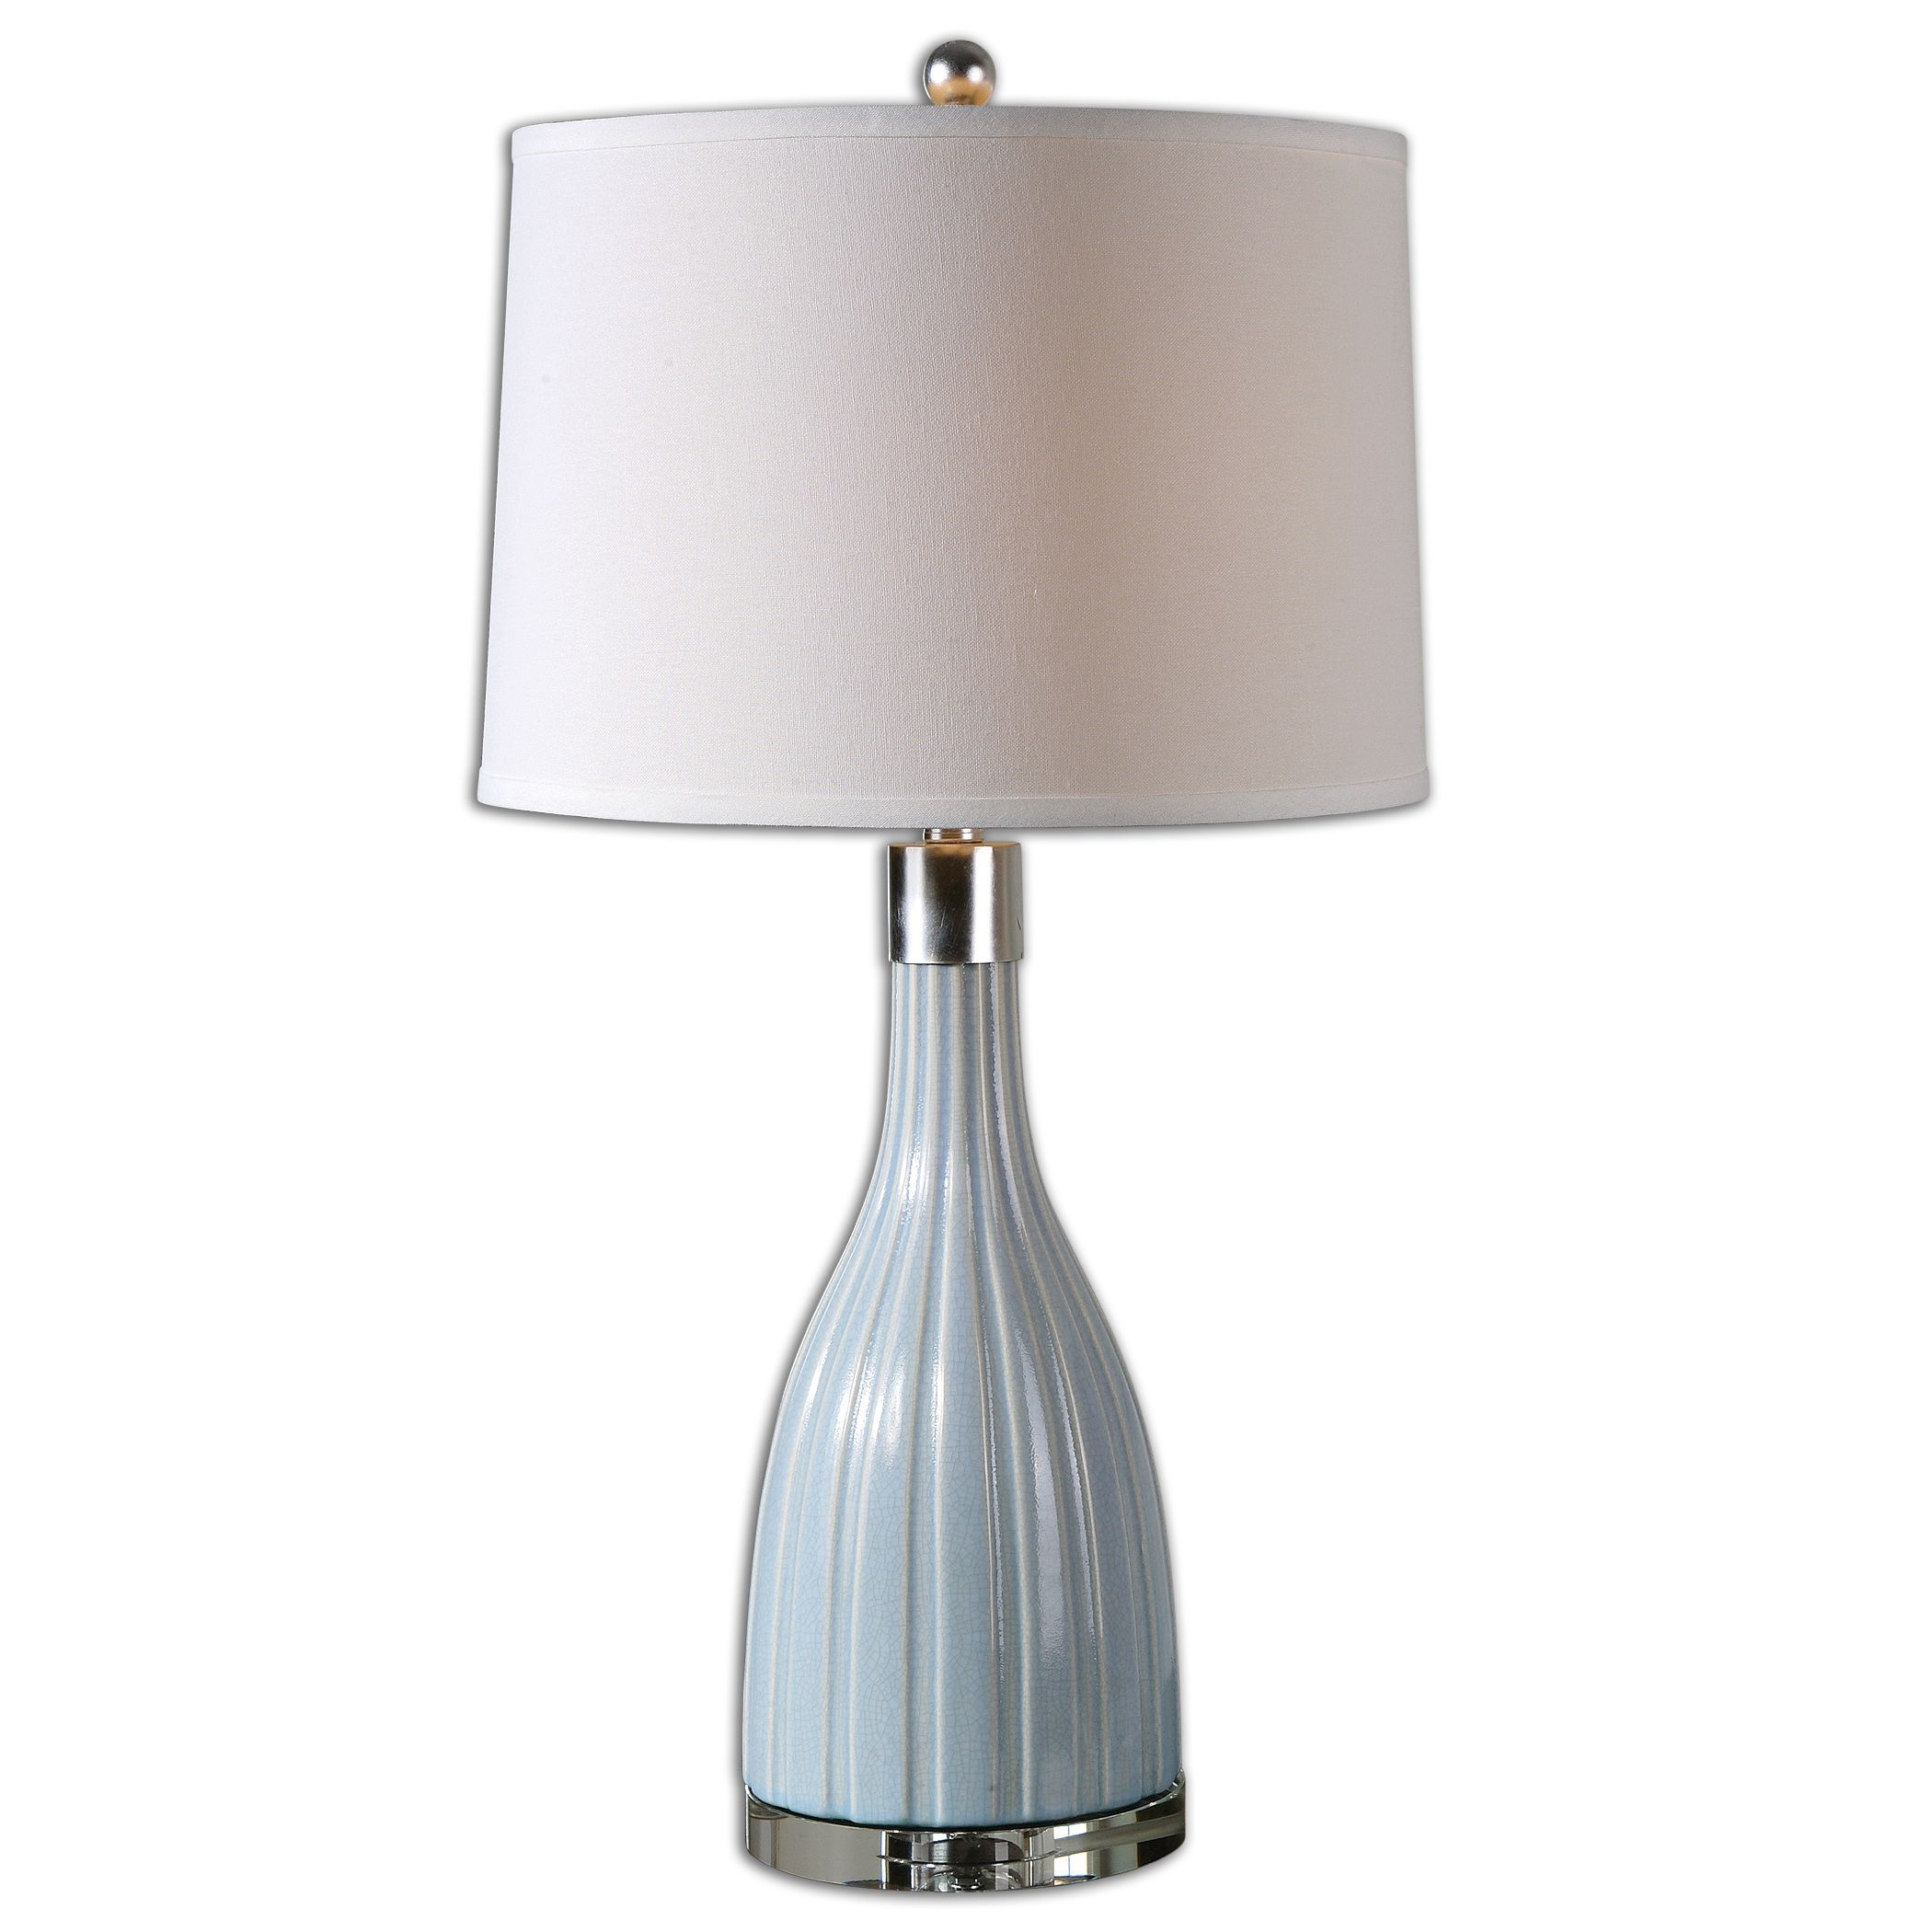 uttermost 26563 monona light blue table lamp. Black Bedroom Furniture Sets. Home Design Ideas